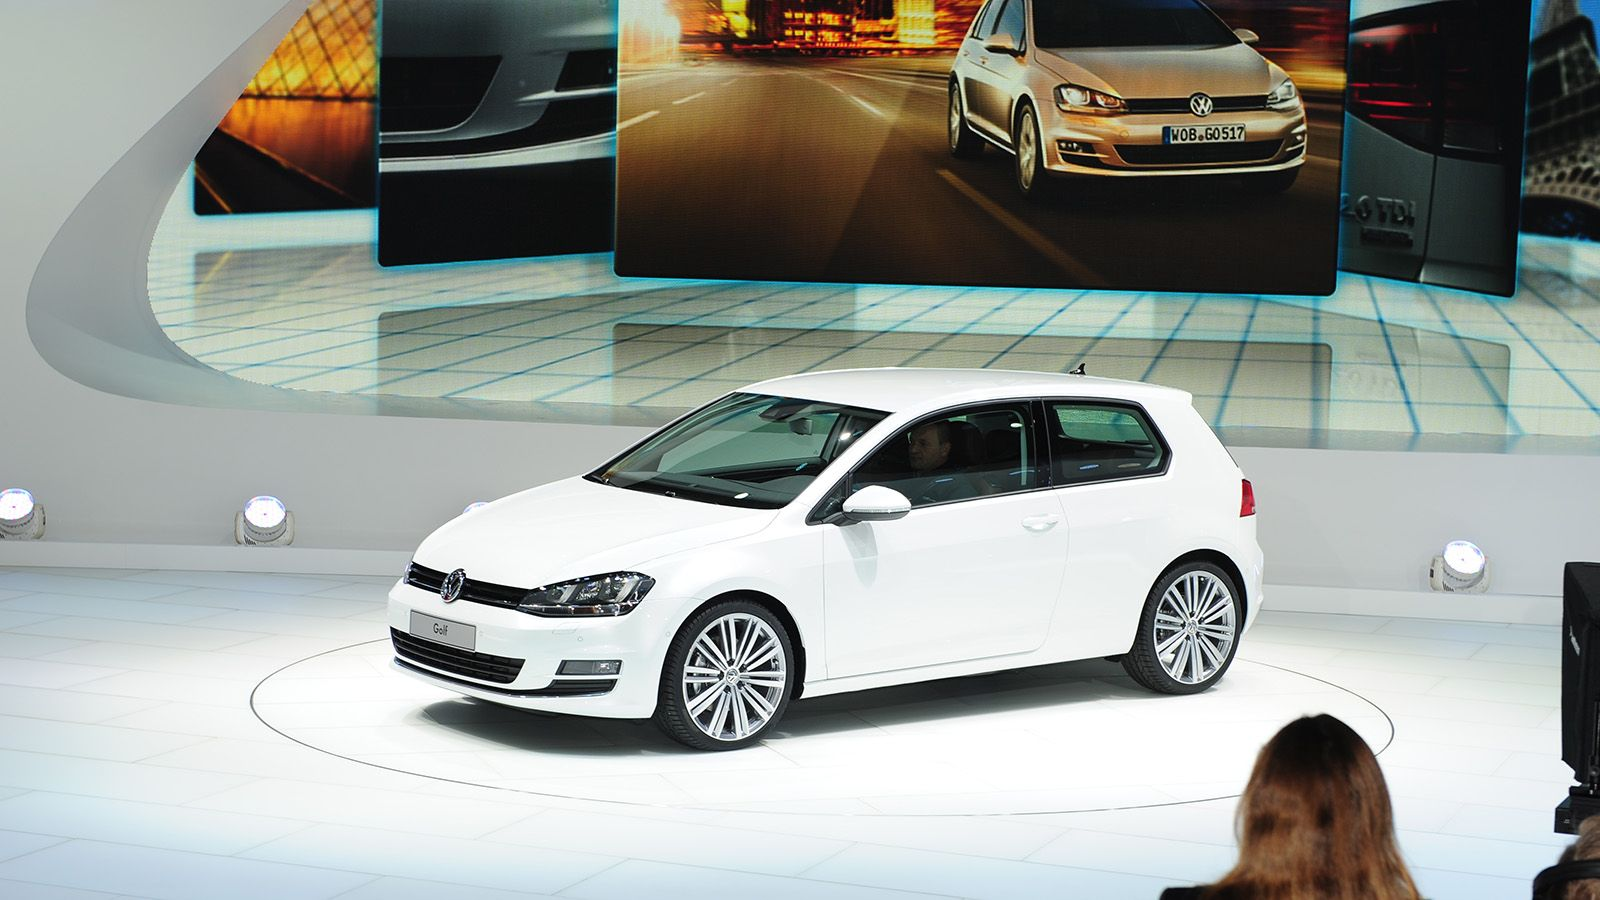 2014 Golf Gti Say Guten Tag To A More Powerful Hot Hatch Golf